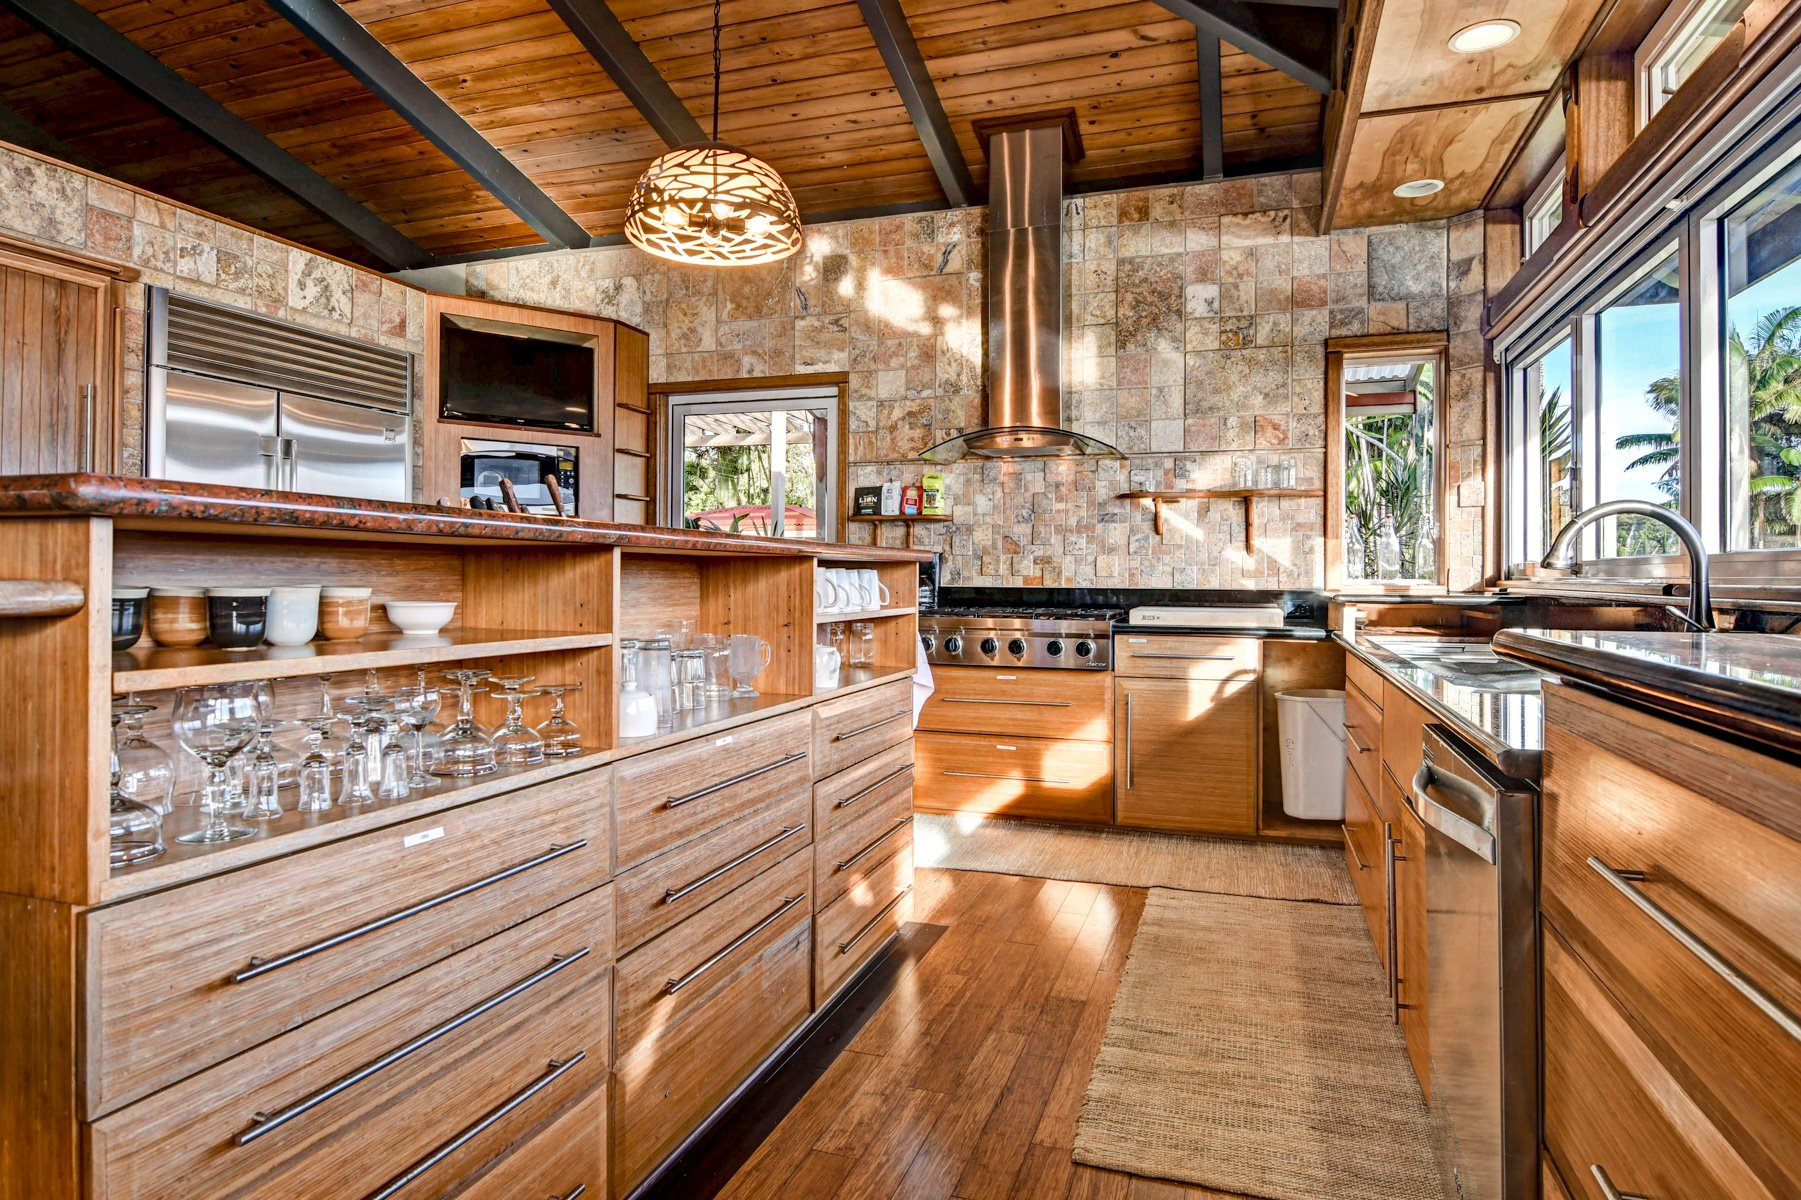 This large open floor plan kitchen was carefully thought out with top of the line everything.